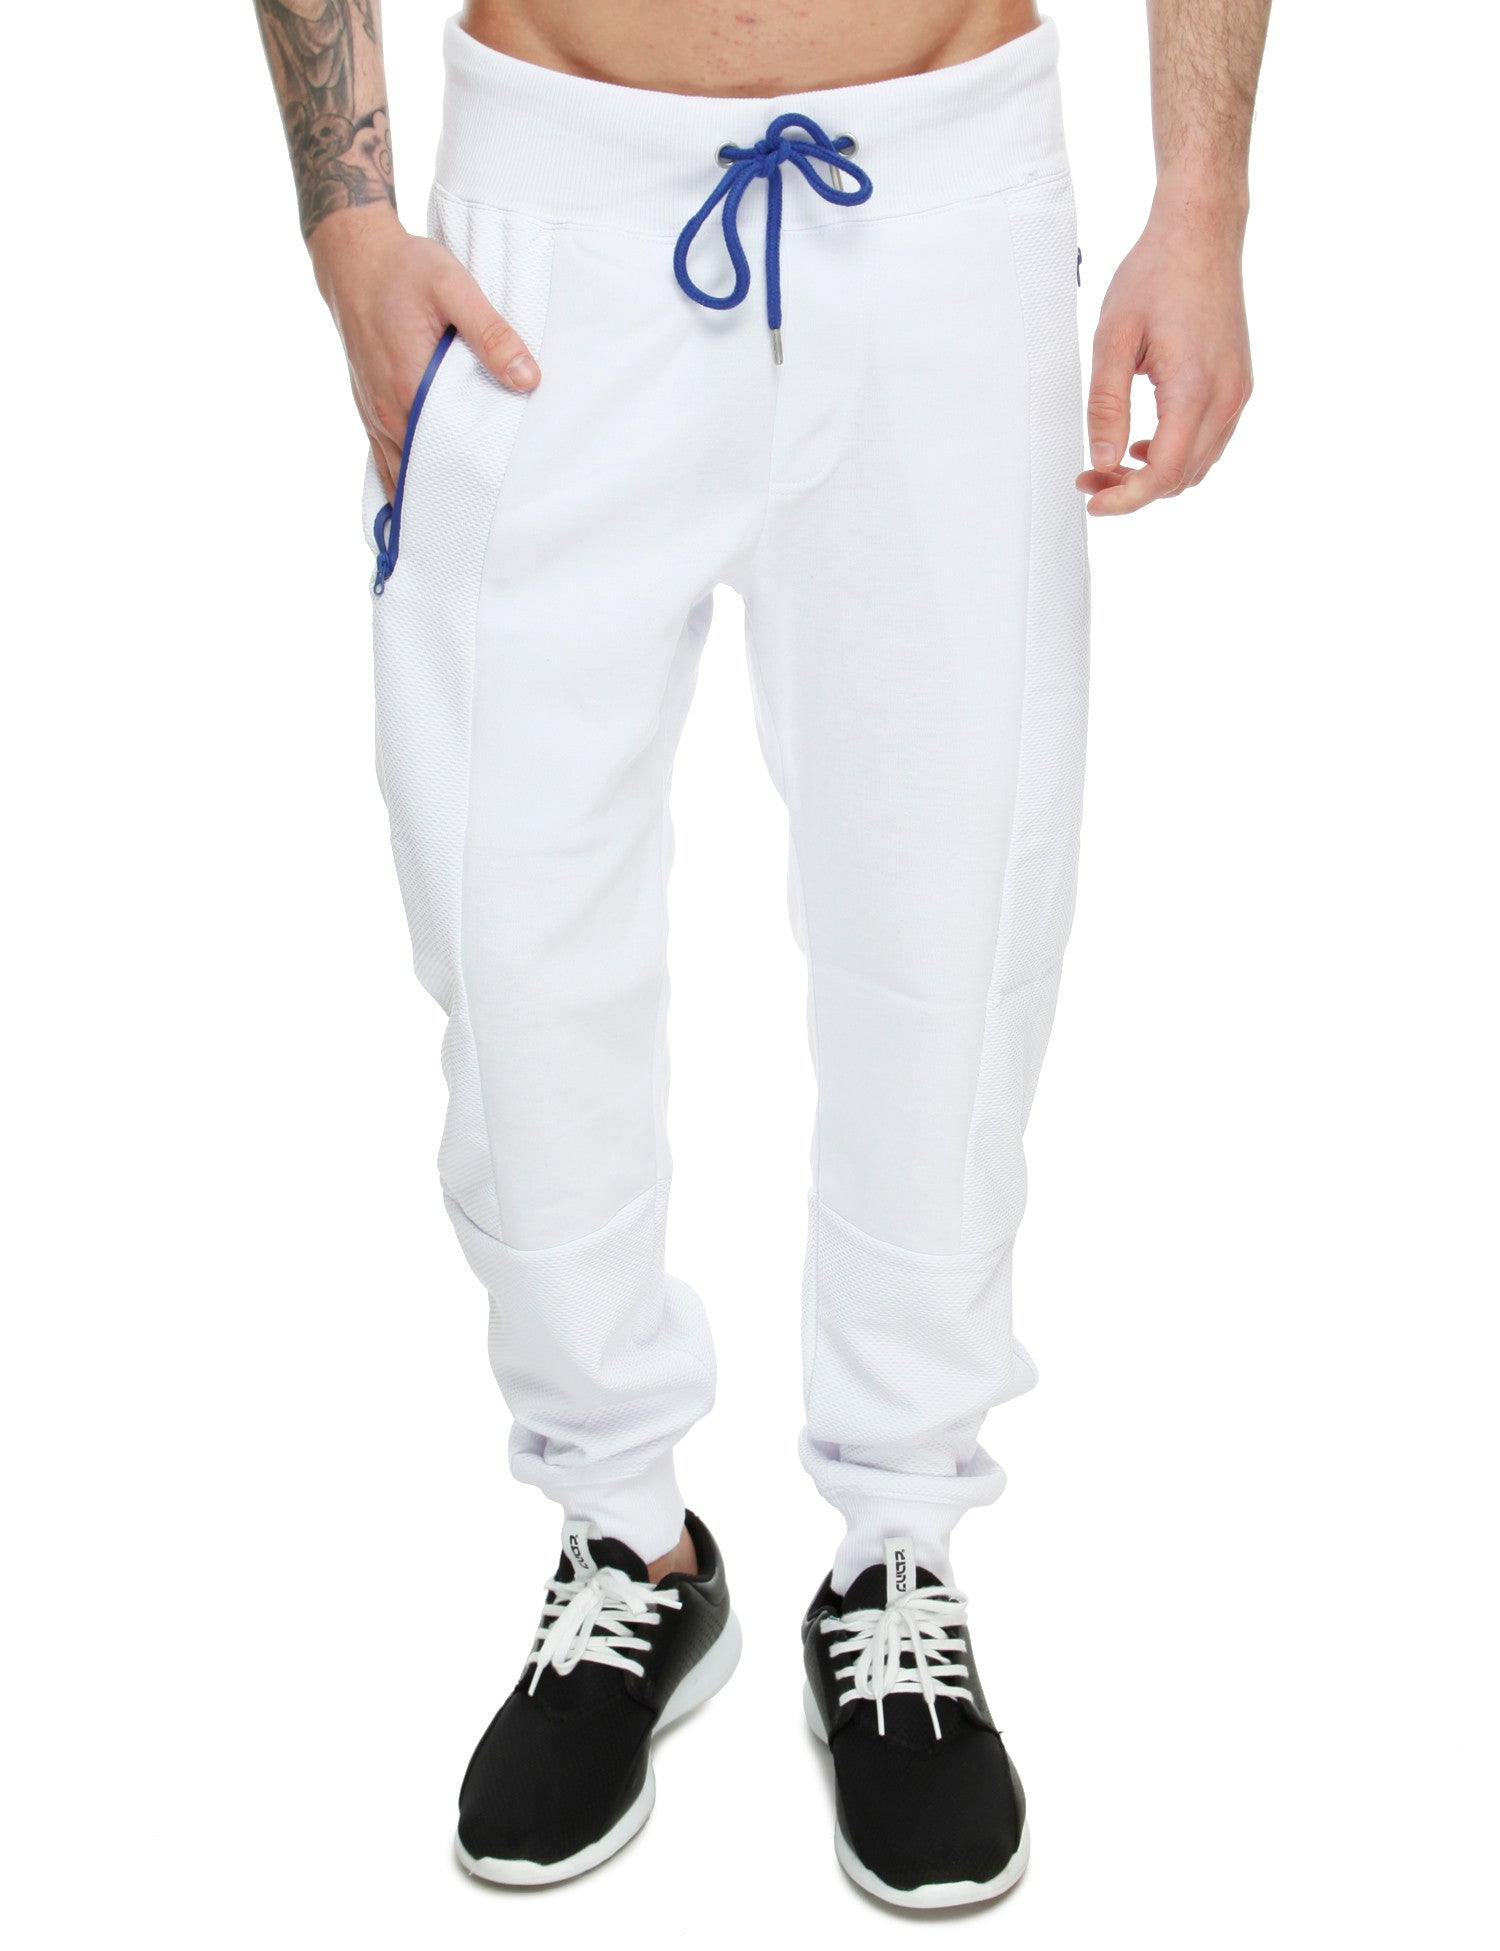 Royal Blue Jersey Mixed Sweatpants 24015P White